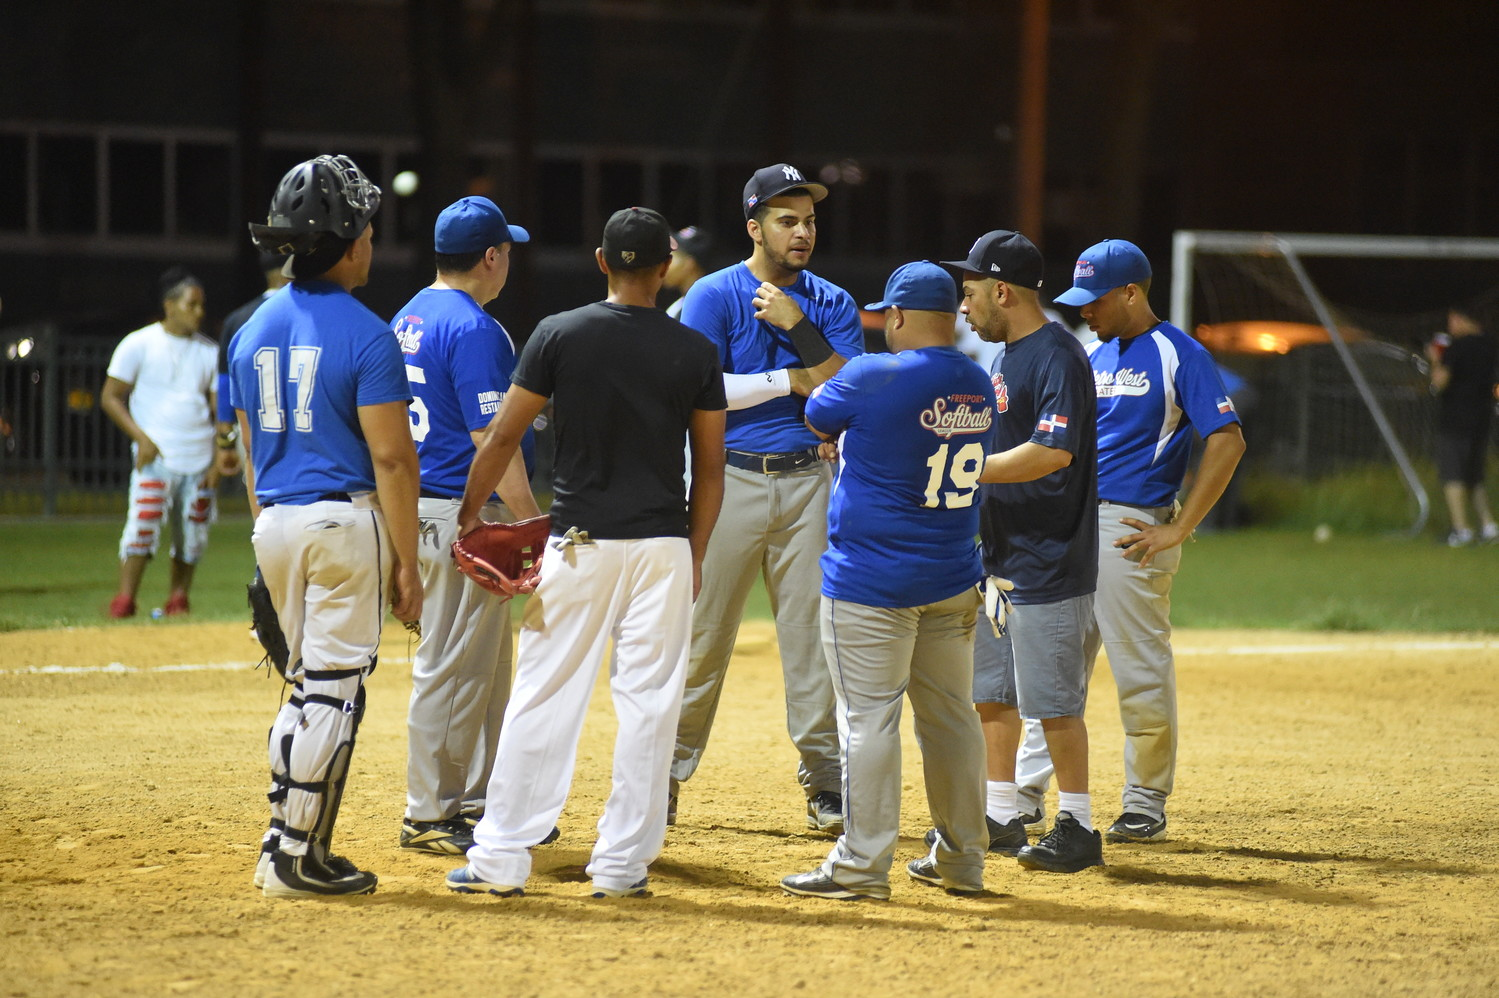 Players for Metro West Water and Dazzling Spa reviewed whether a ball was foul during a recent game.